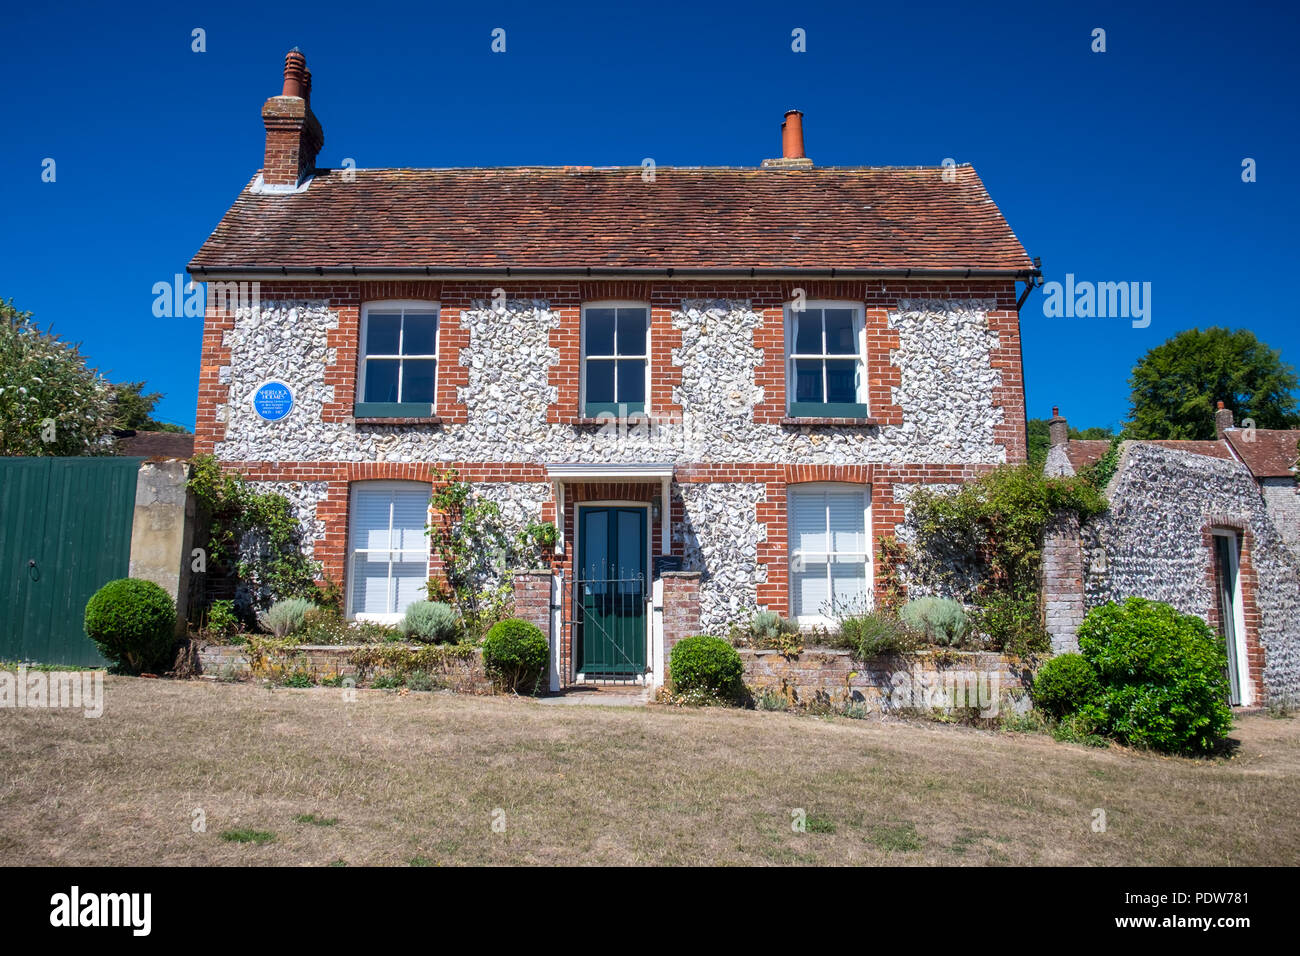 Pendrills Cottage in East Dean, East Sussex. This was the home that Sherlock Holmes, the consulting detective and bee keeper, retired in from 1903-1917 - Stock Image